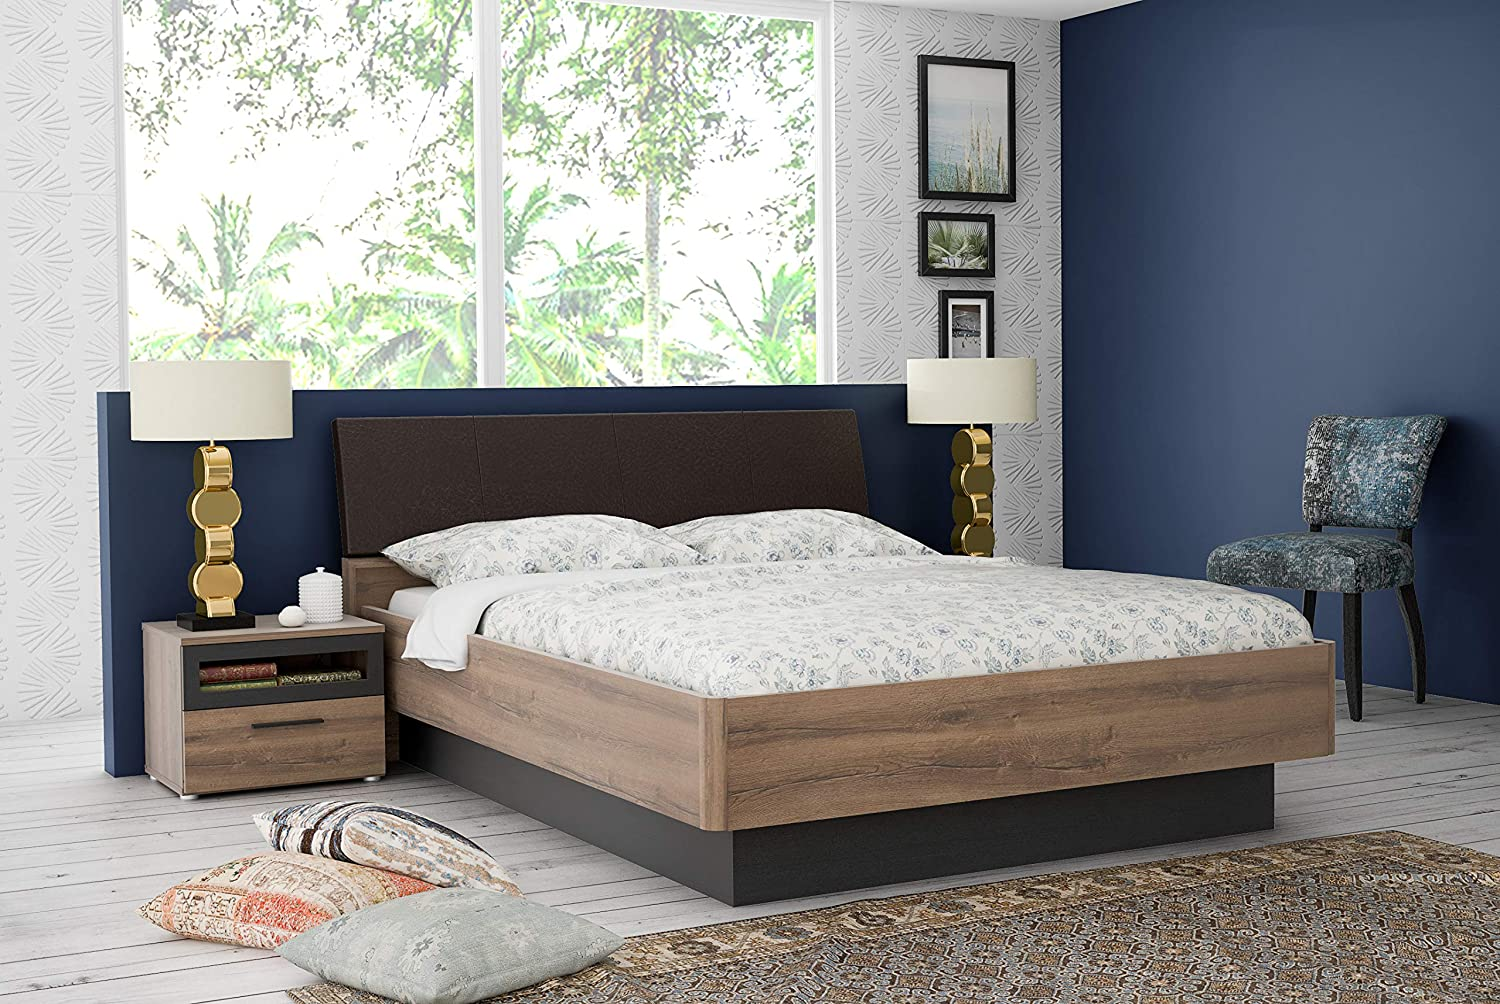 Stylespa Jacky Queen Size Engineered Wood Bed With Hydraulic